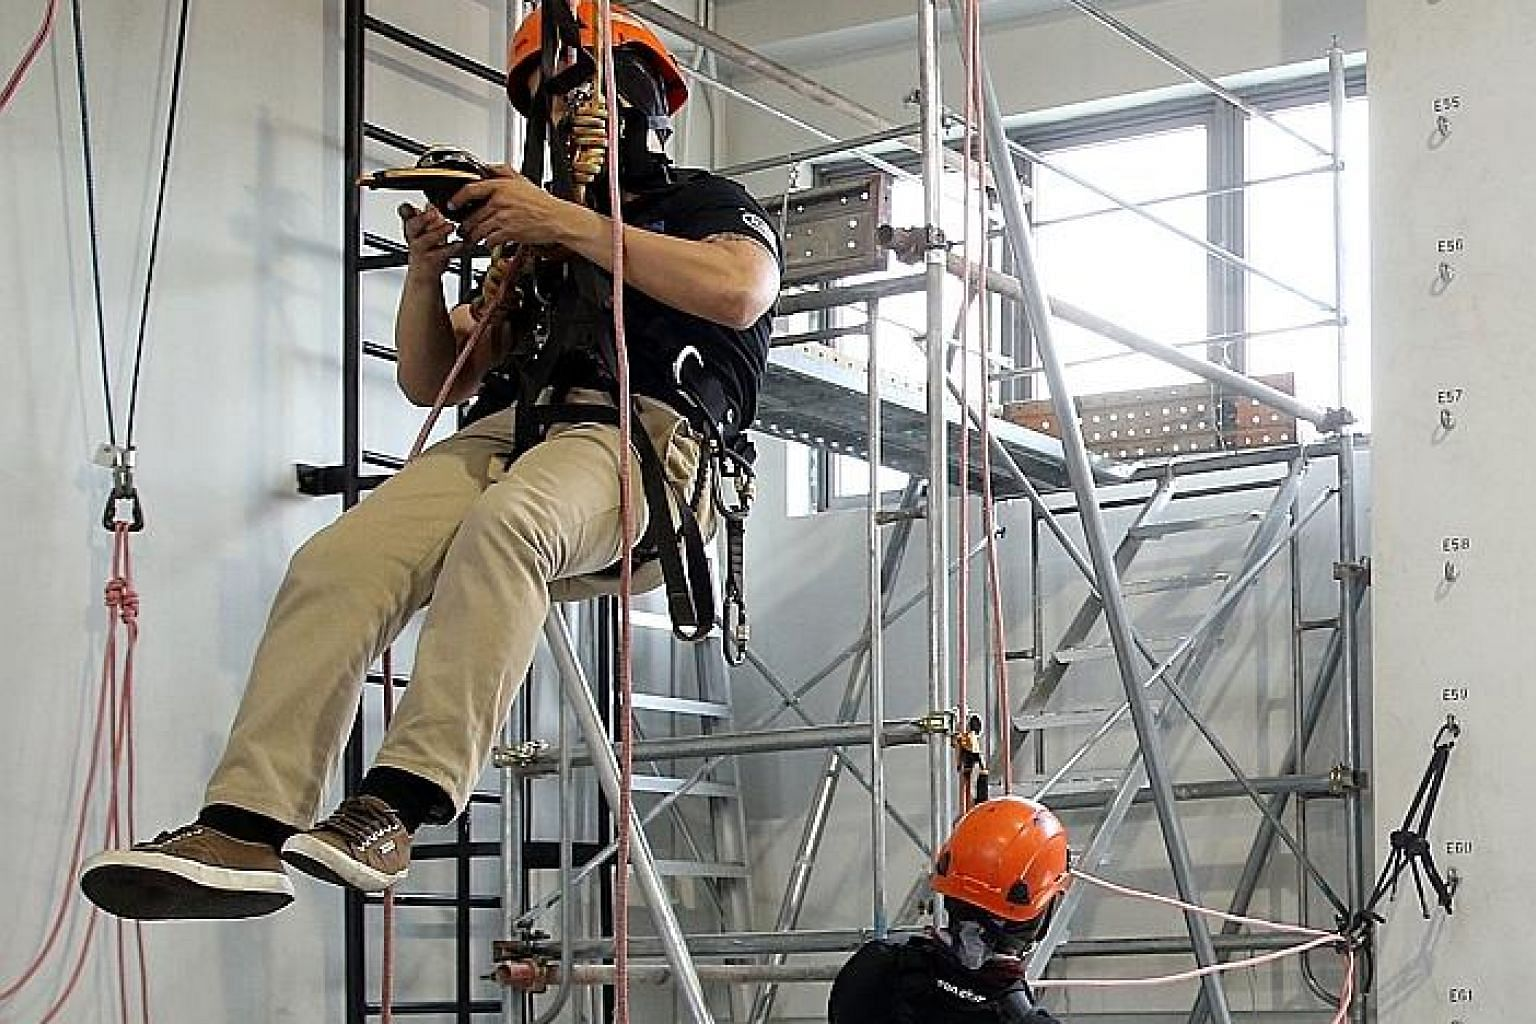 Rope-access training at D-Ocean. Demand for rope-access workers may rise as building owners look to replace non-compliant cladding.